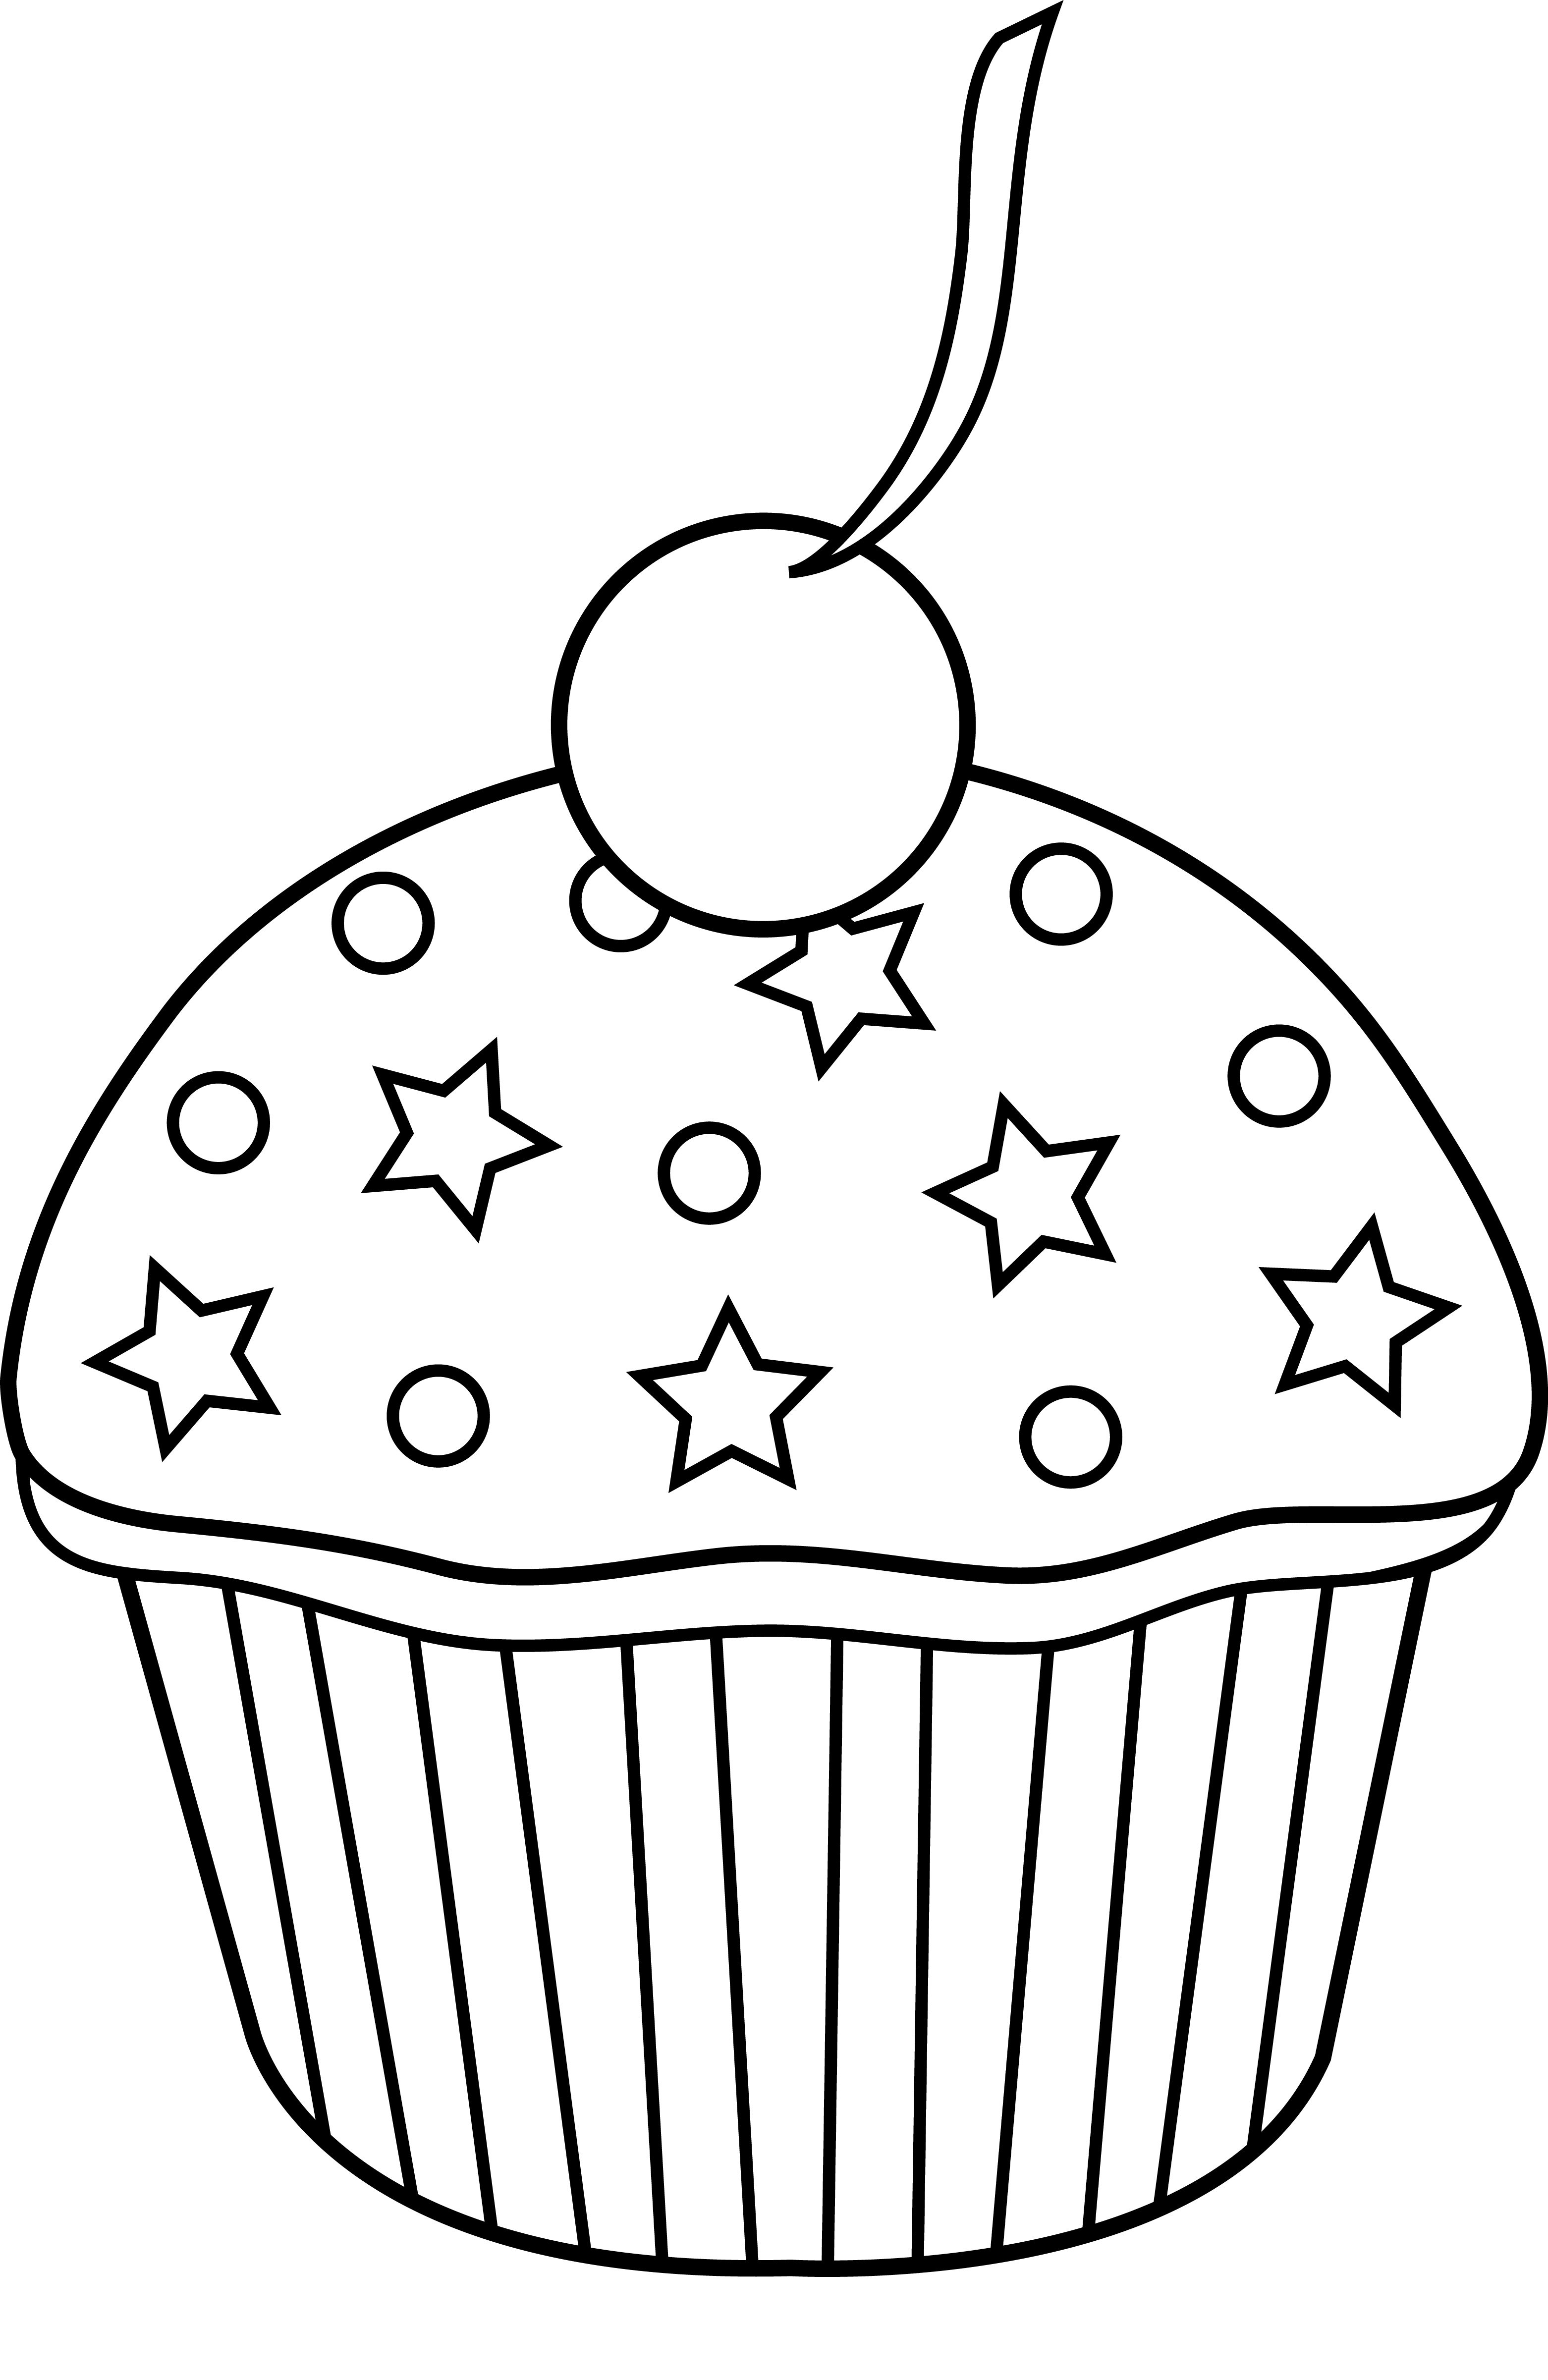 Free Cupcake Clip Art Pictures